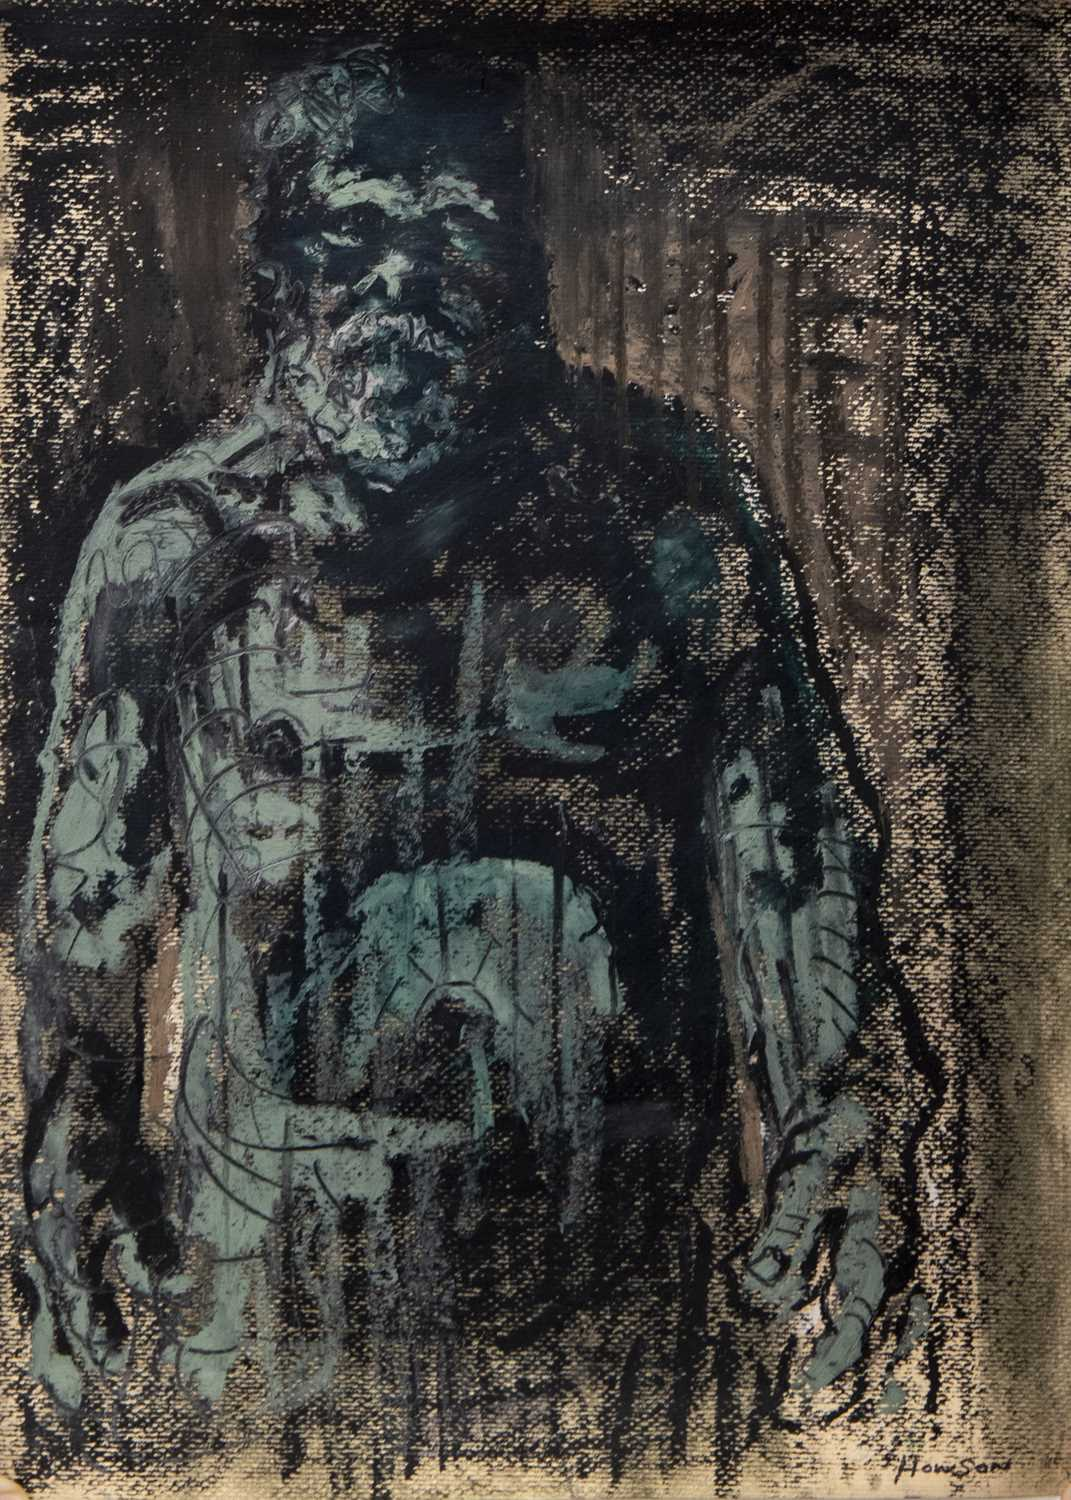 Lot 507 - AN UNTITLED AND UNFRAMED PASTEL BY PETER HOWSON